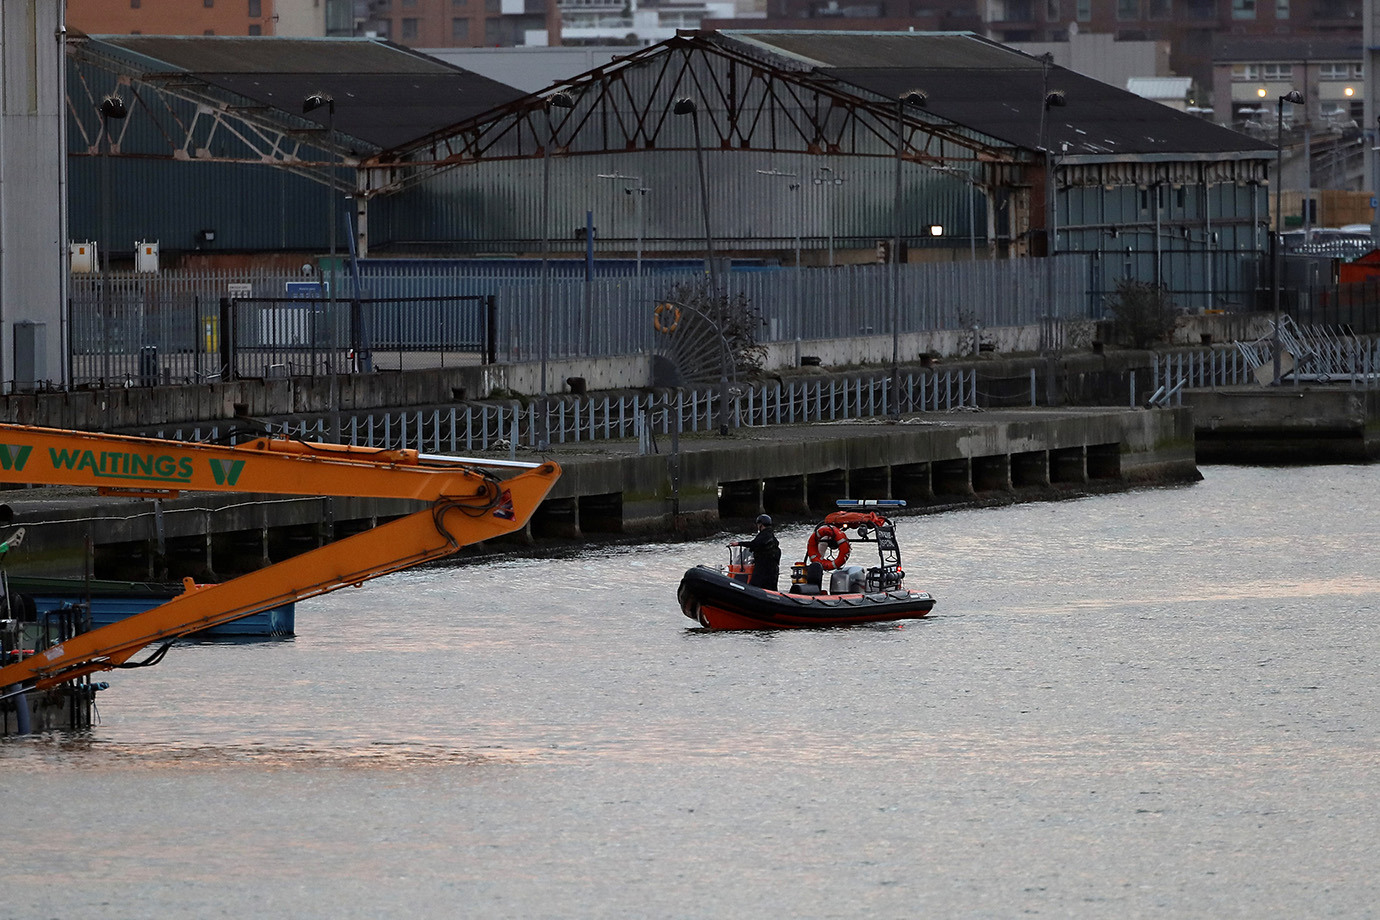 A bomb disposal team stand on a boat on near London City Airport, in London, Britain February 12, 20